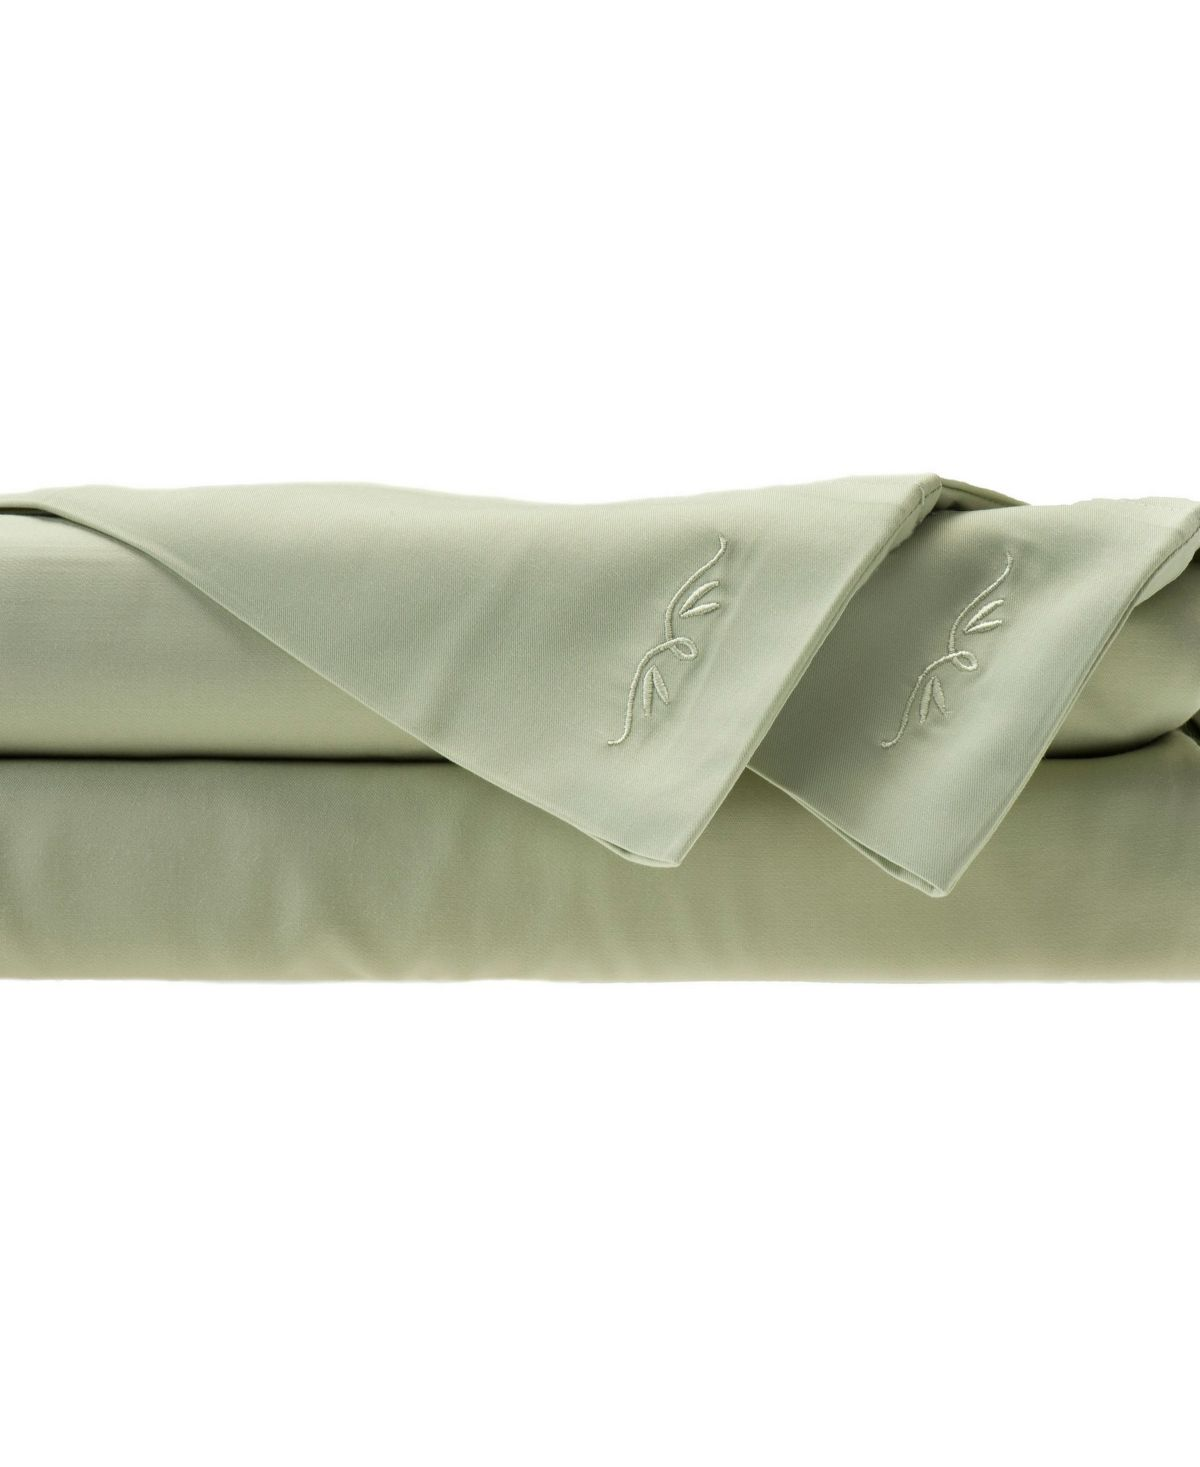 Bedvoyage Luxury Bamboo Sheets 4 Piece Viscose From Bamboo